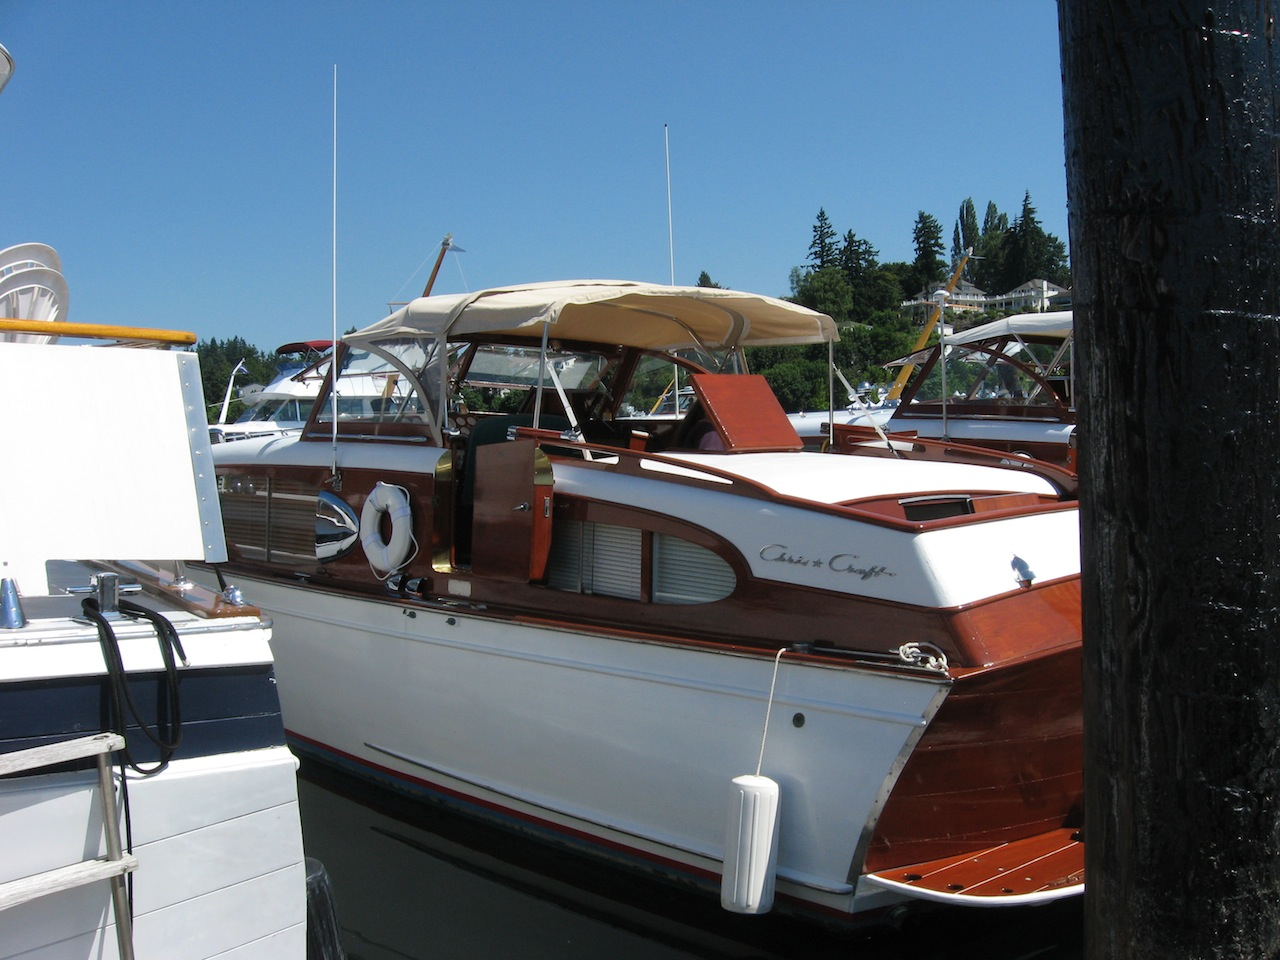 chris-craft-rendezvous-2010_74